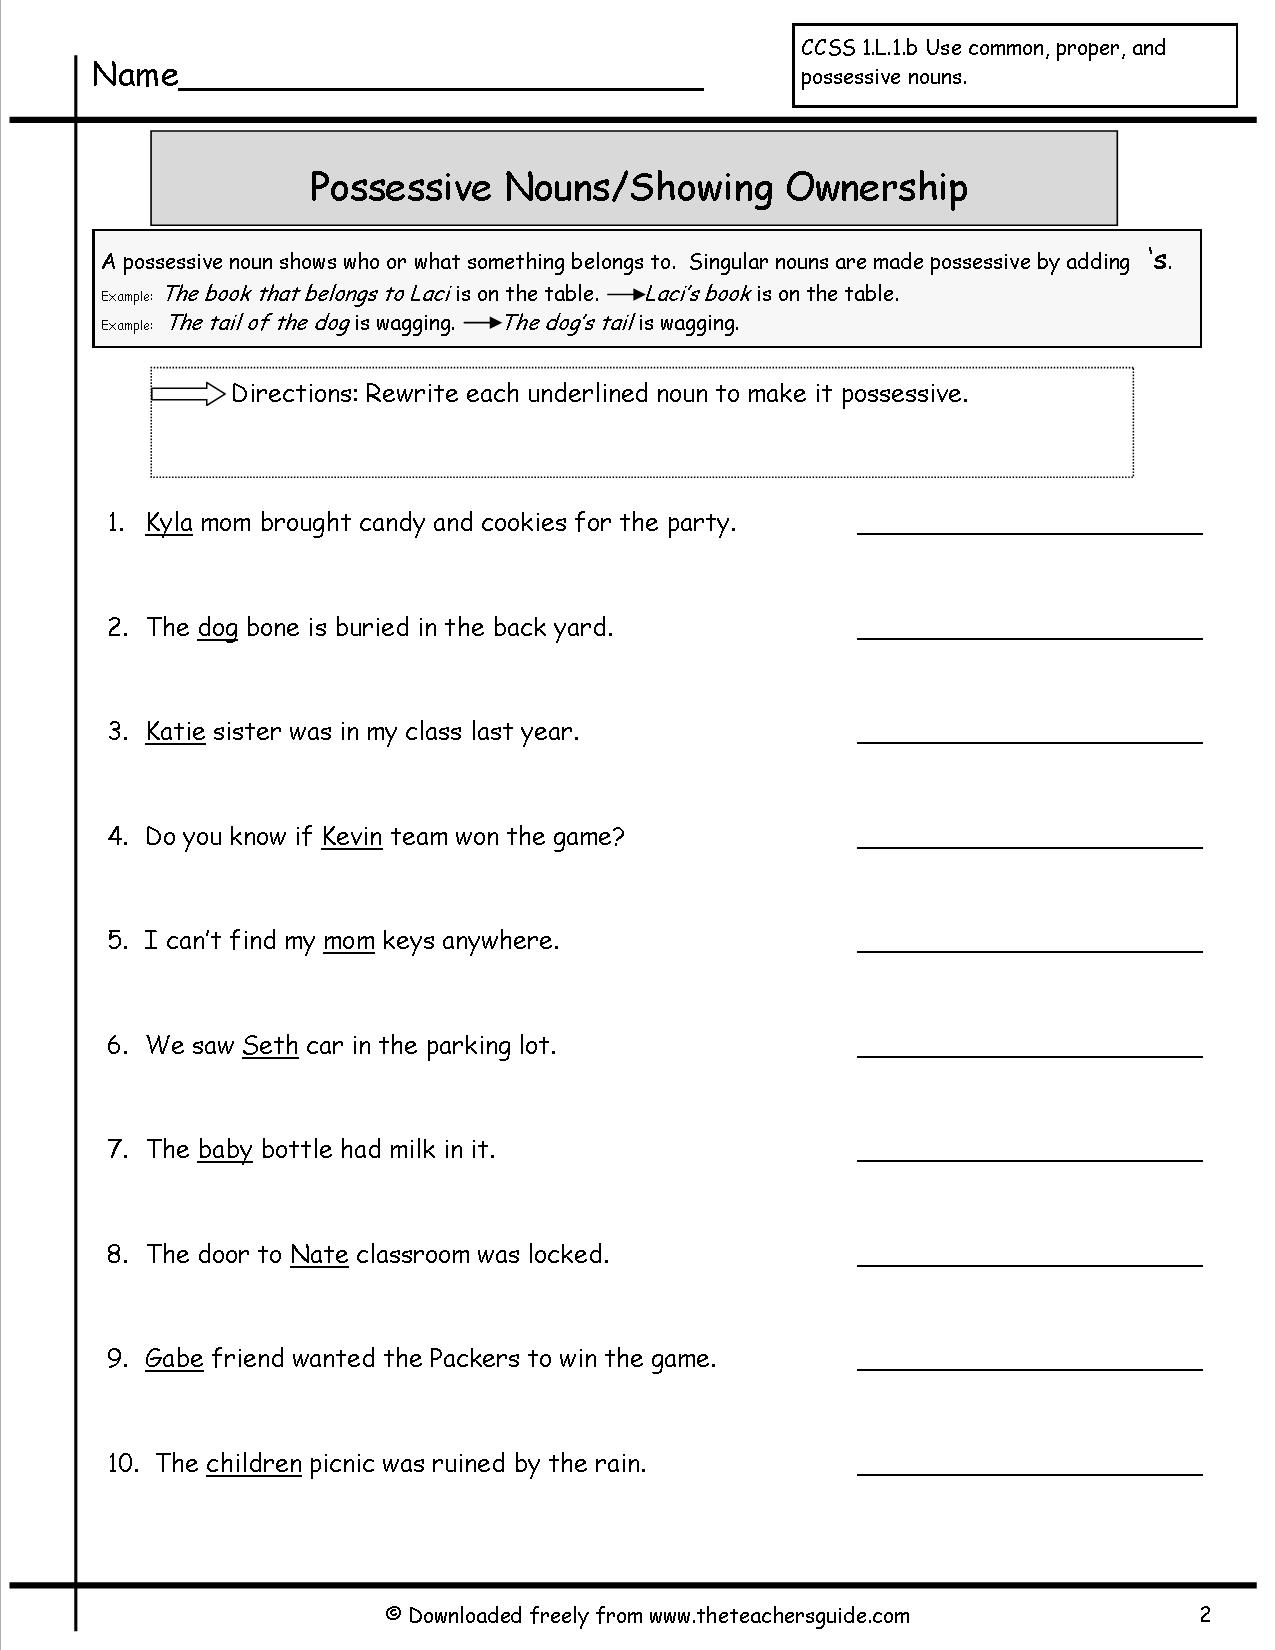 Possessive Nouns Worksheets From The Teacher's Guide - Free Printable Possessive Nouns Worksheets